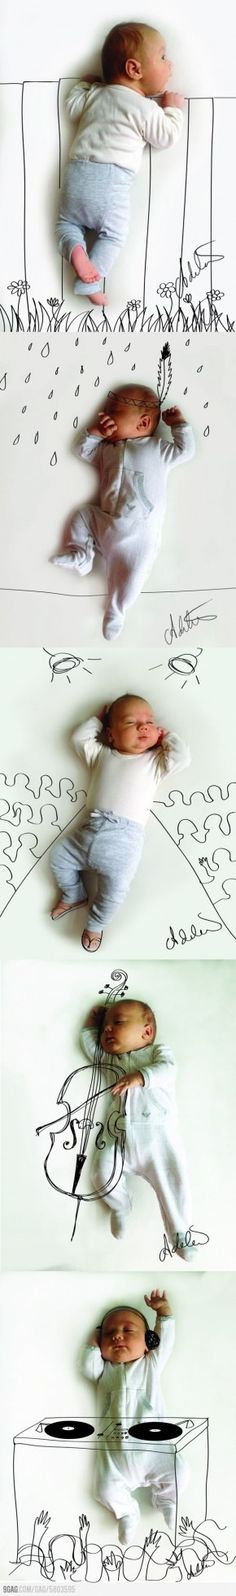 Drawing on photos in Photoshop, adorable baby